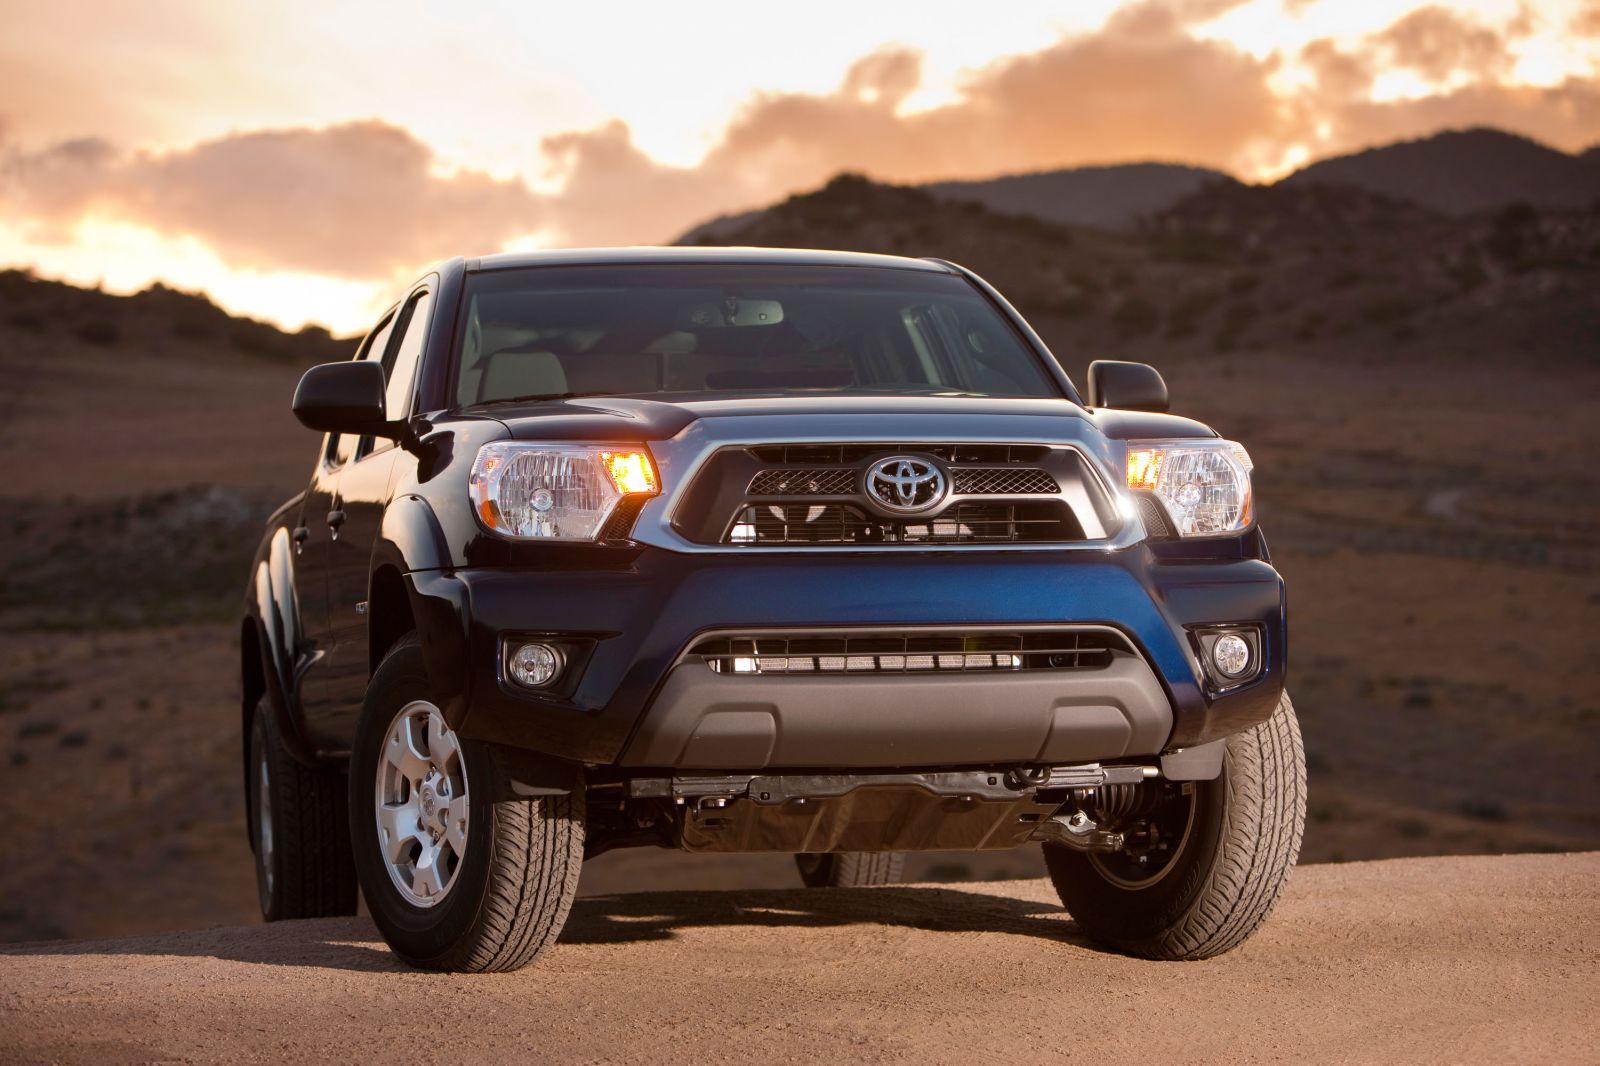 Toyota Tacoma Interior 23858 Hd Wallpapers in Cars   Imagescicom 1600x1066